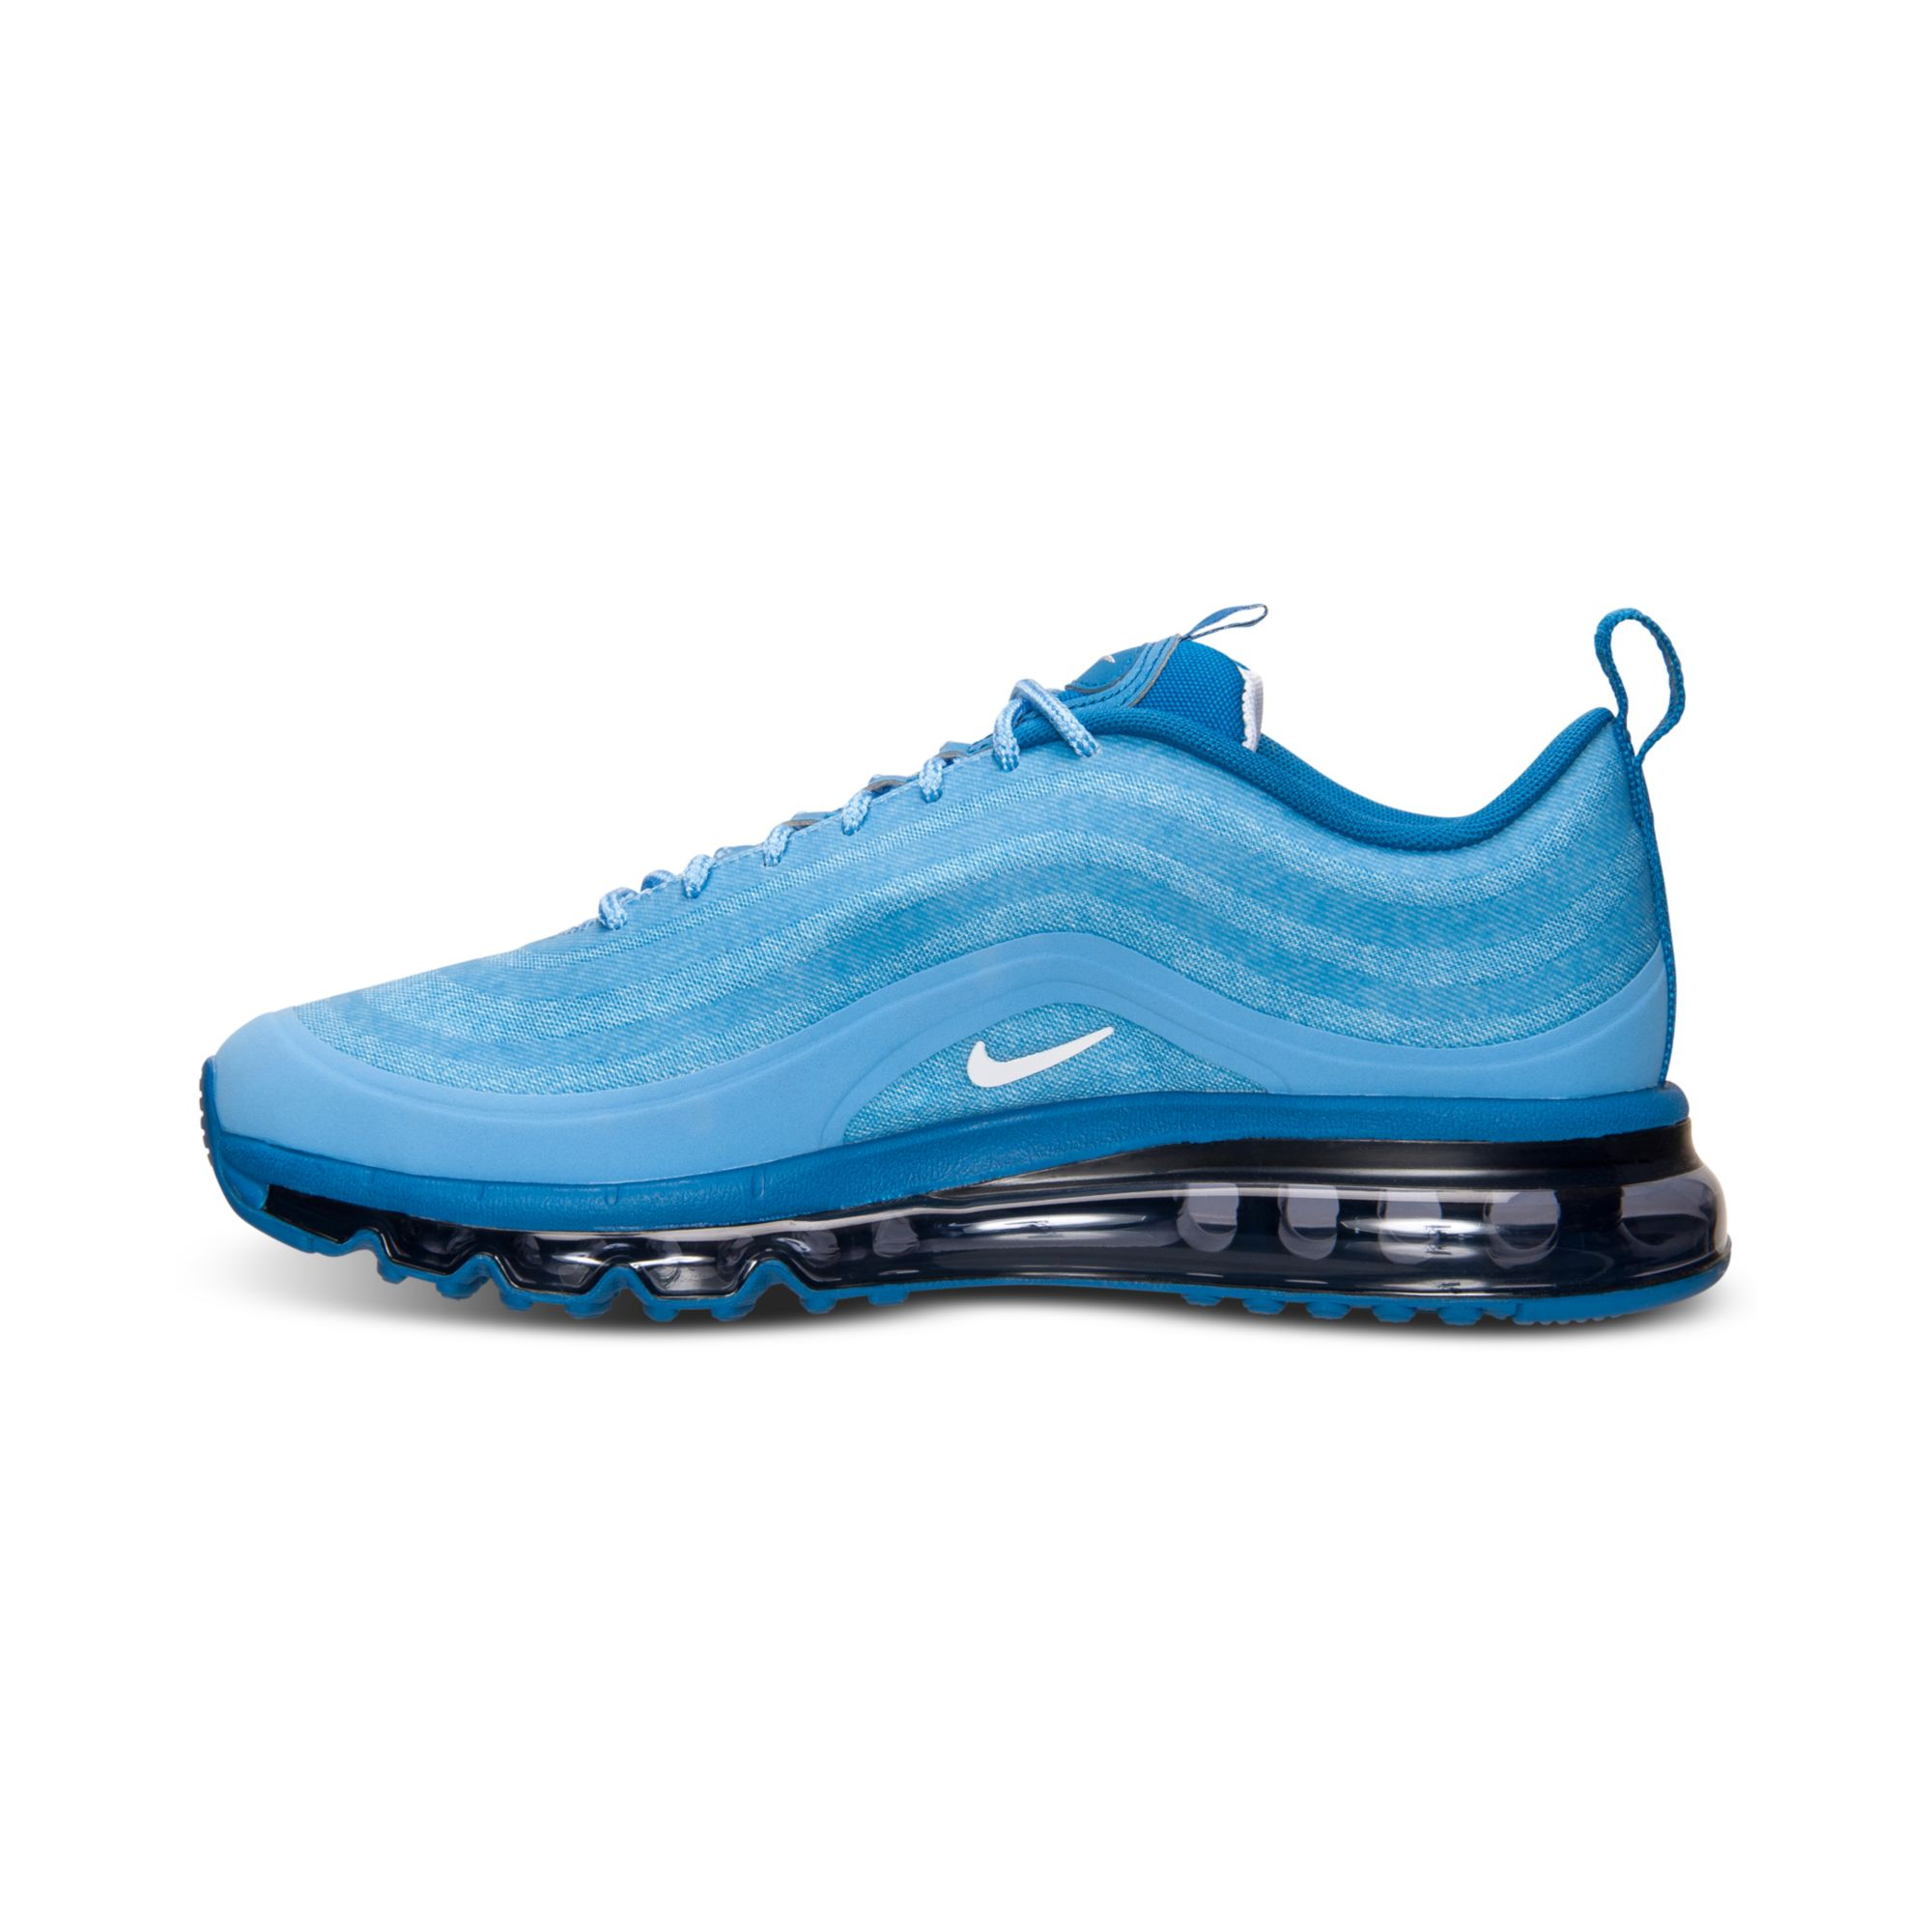 Lyst - Nike Mens Air Max 97 Running Sneakers From Finish Line in ... c332eba75f53